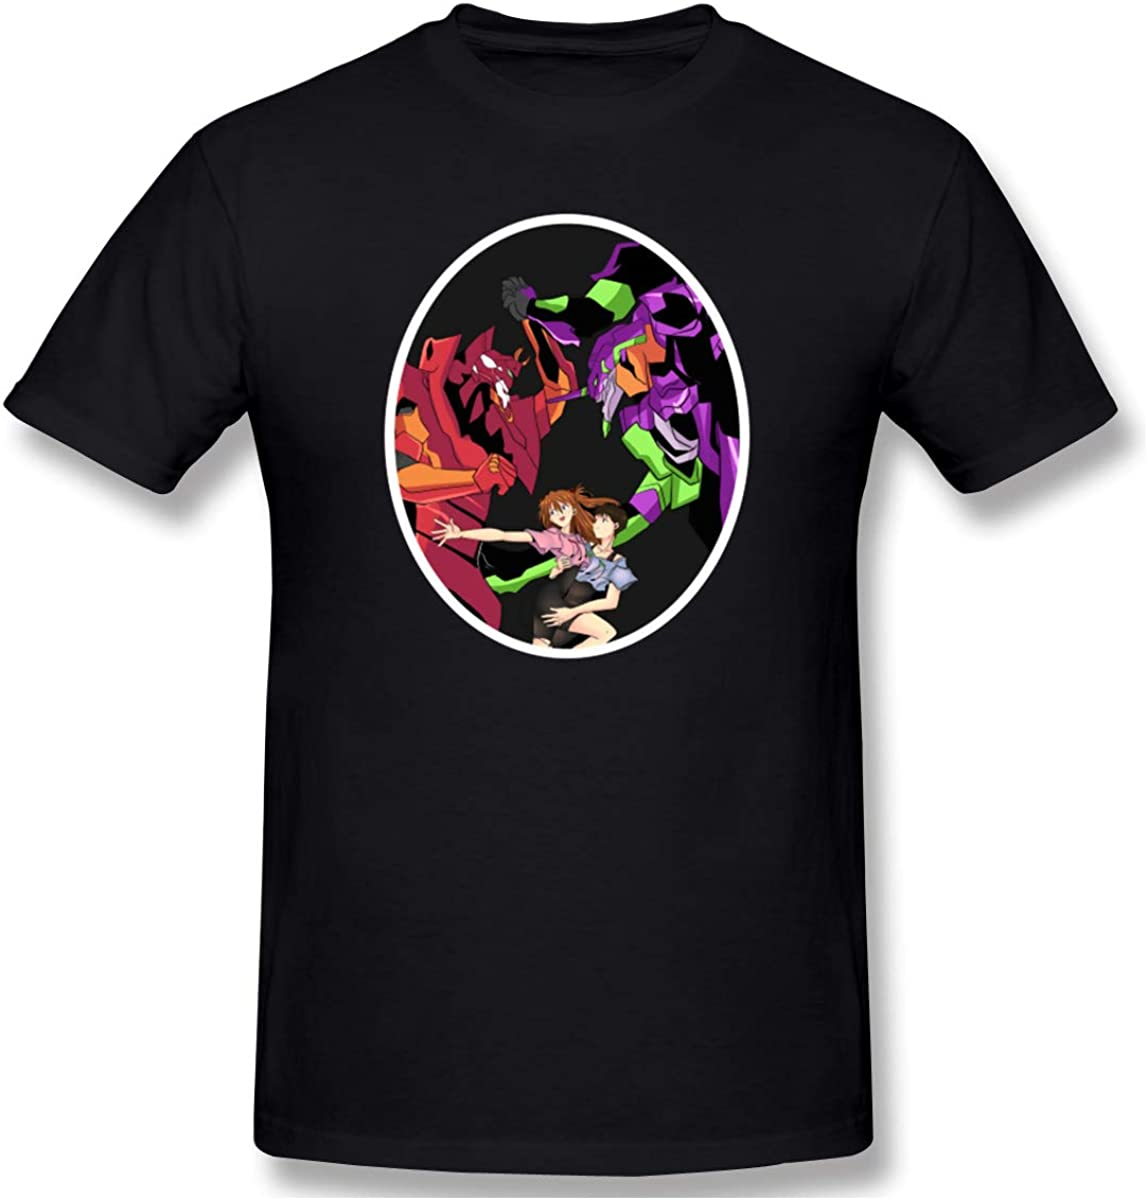 Neon Genesis Evangelion: Asuka and Evangelion Unit-02 T-Shirt - Officially Licensed